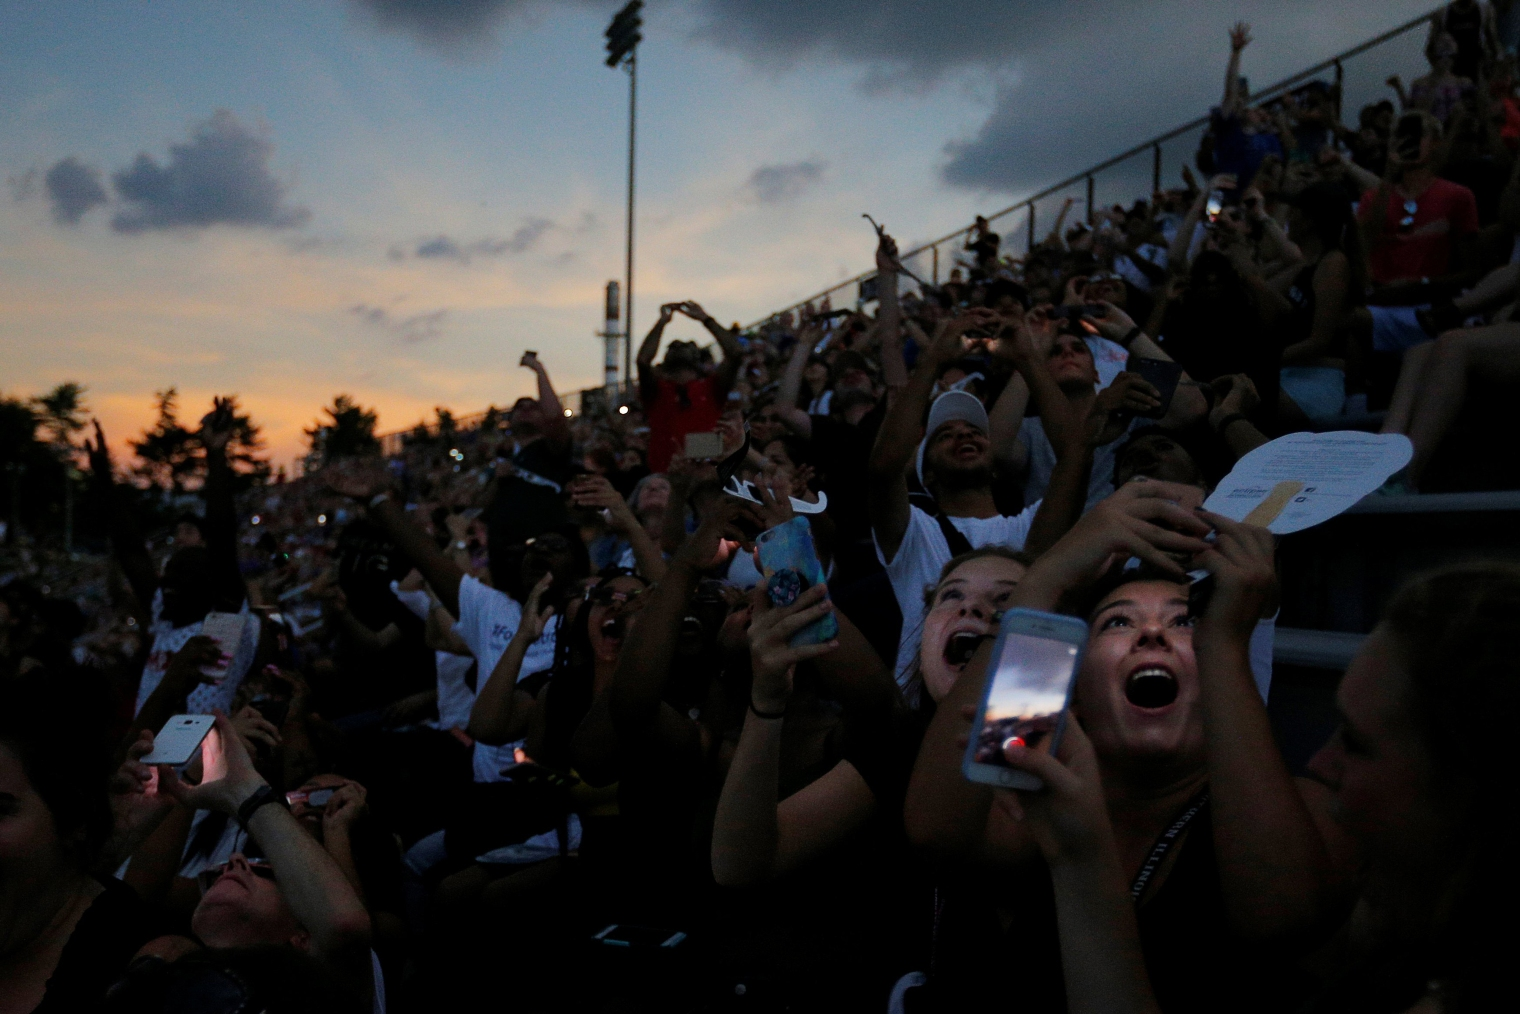 People react to the total eclipse in the football stadium at Southern Illinois University in Carbondale, Illinois, on Aug. 21, 2017.